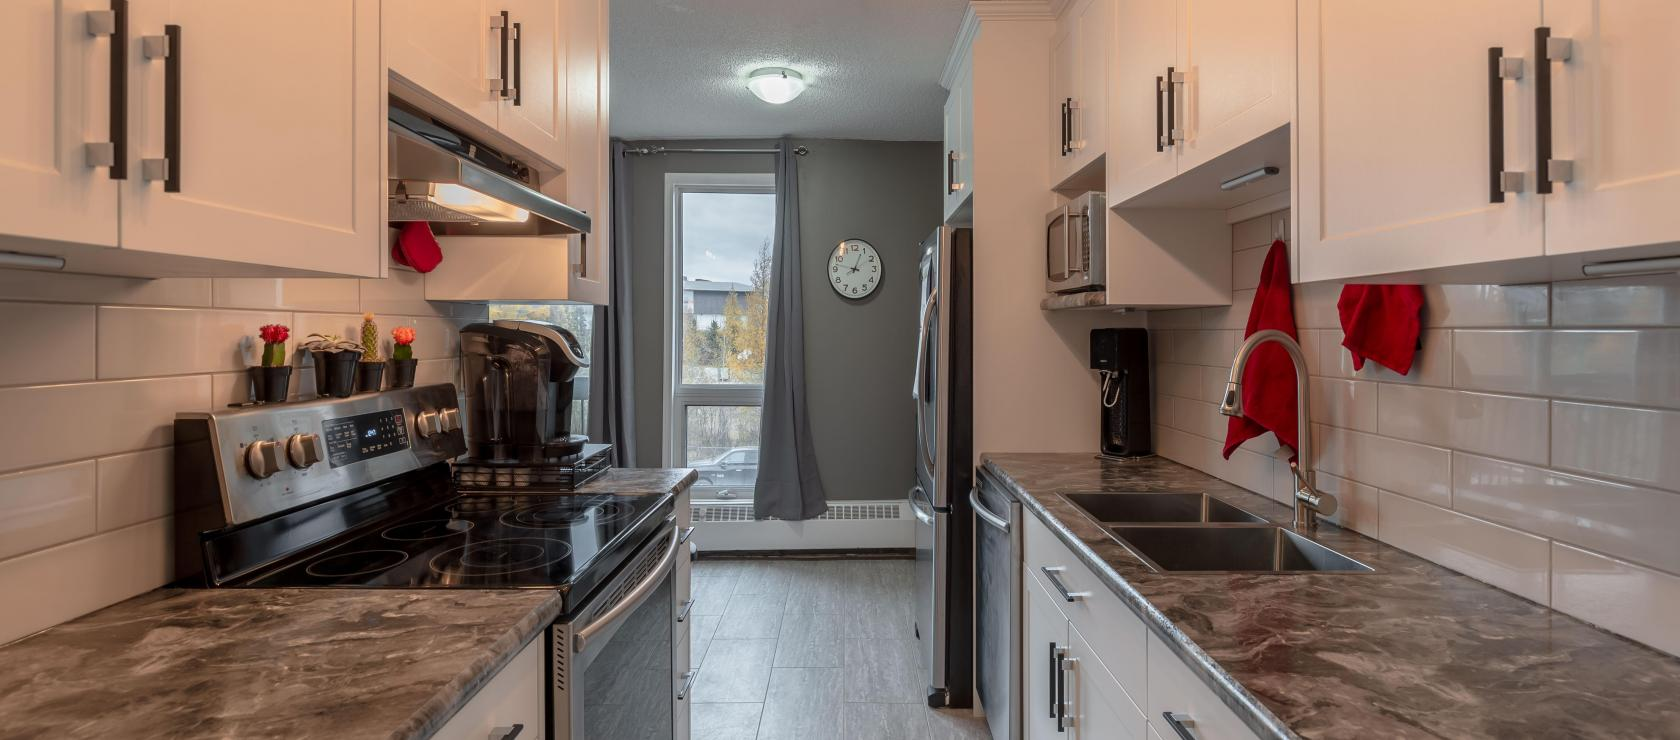 A104 - 5109 Forrest Drive, Forrest Park, Yellowknife 2